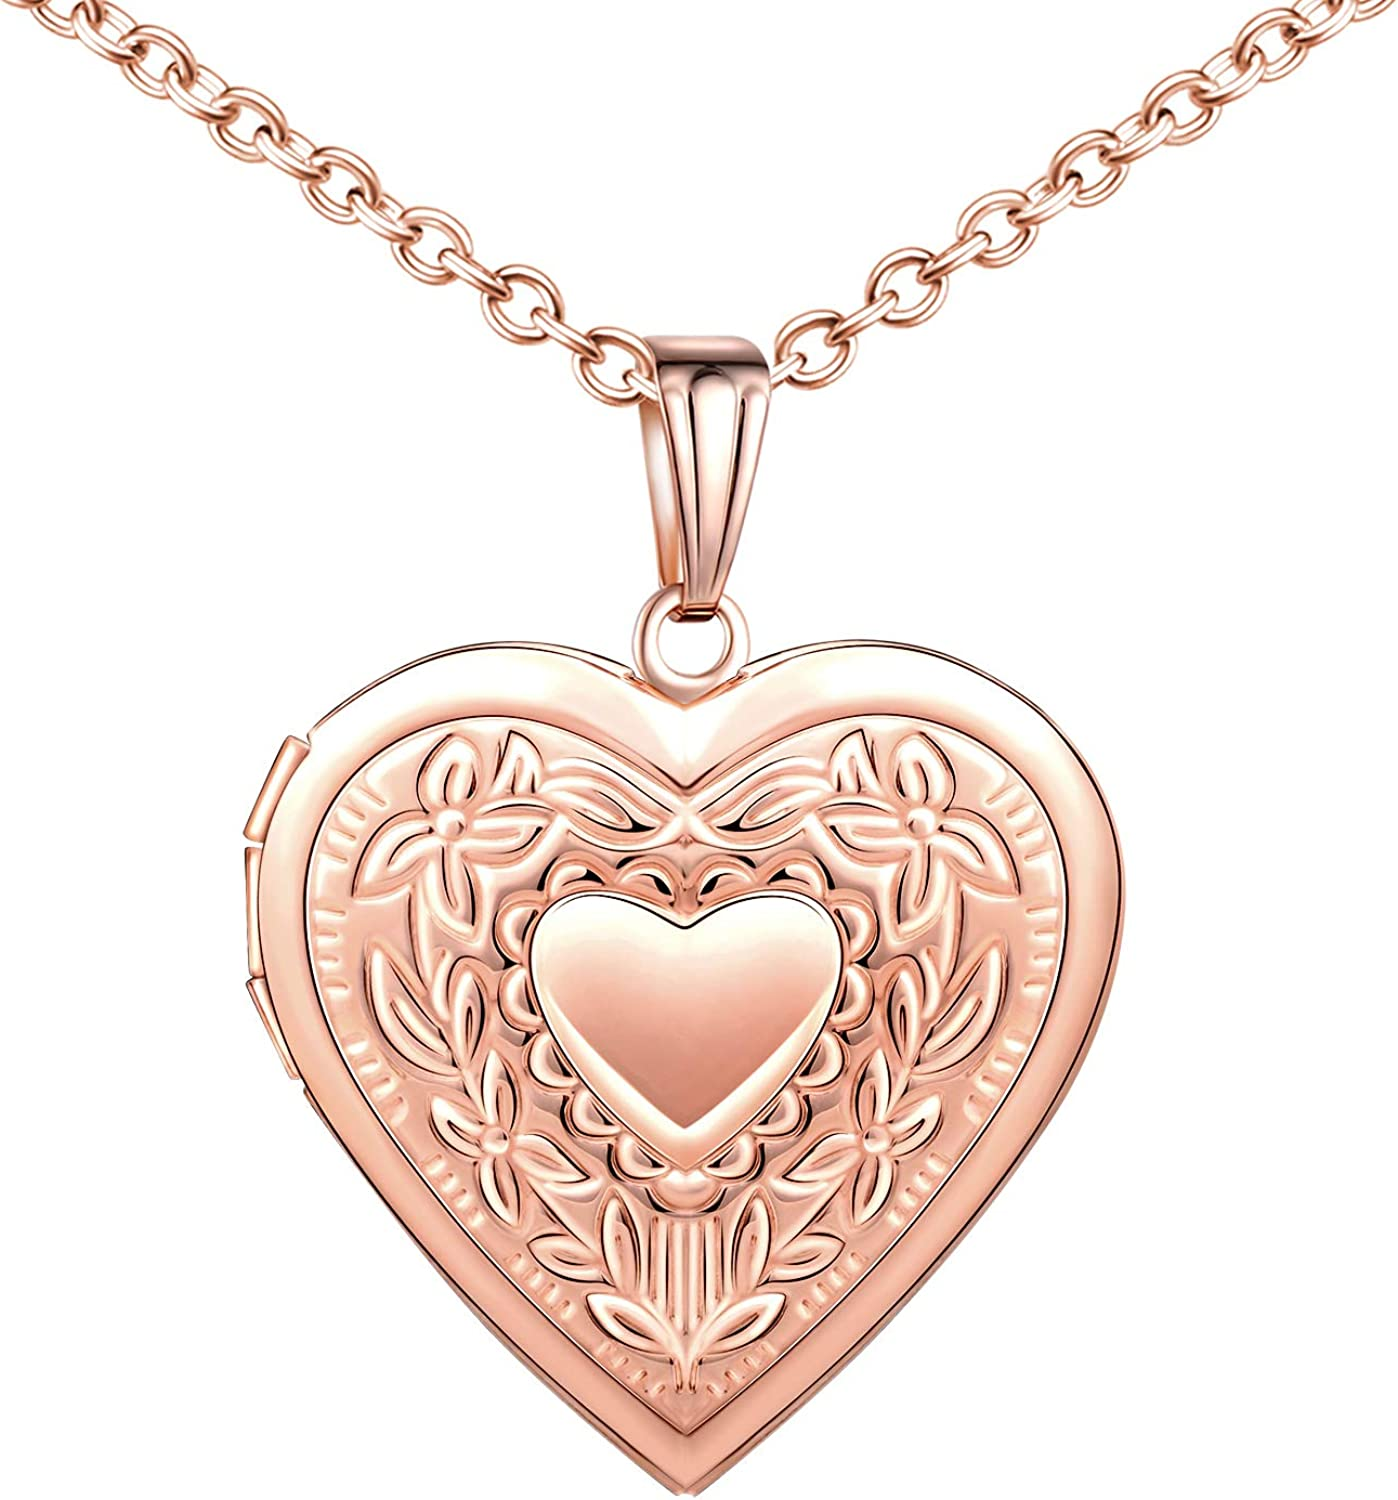 Online limited product MicLee Heart Shape Photo Locket Steel Phoenix Mall Necklace Stainless Pendant